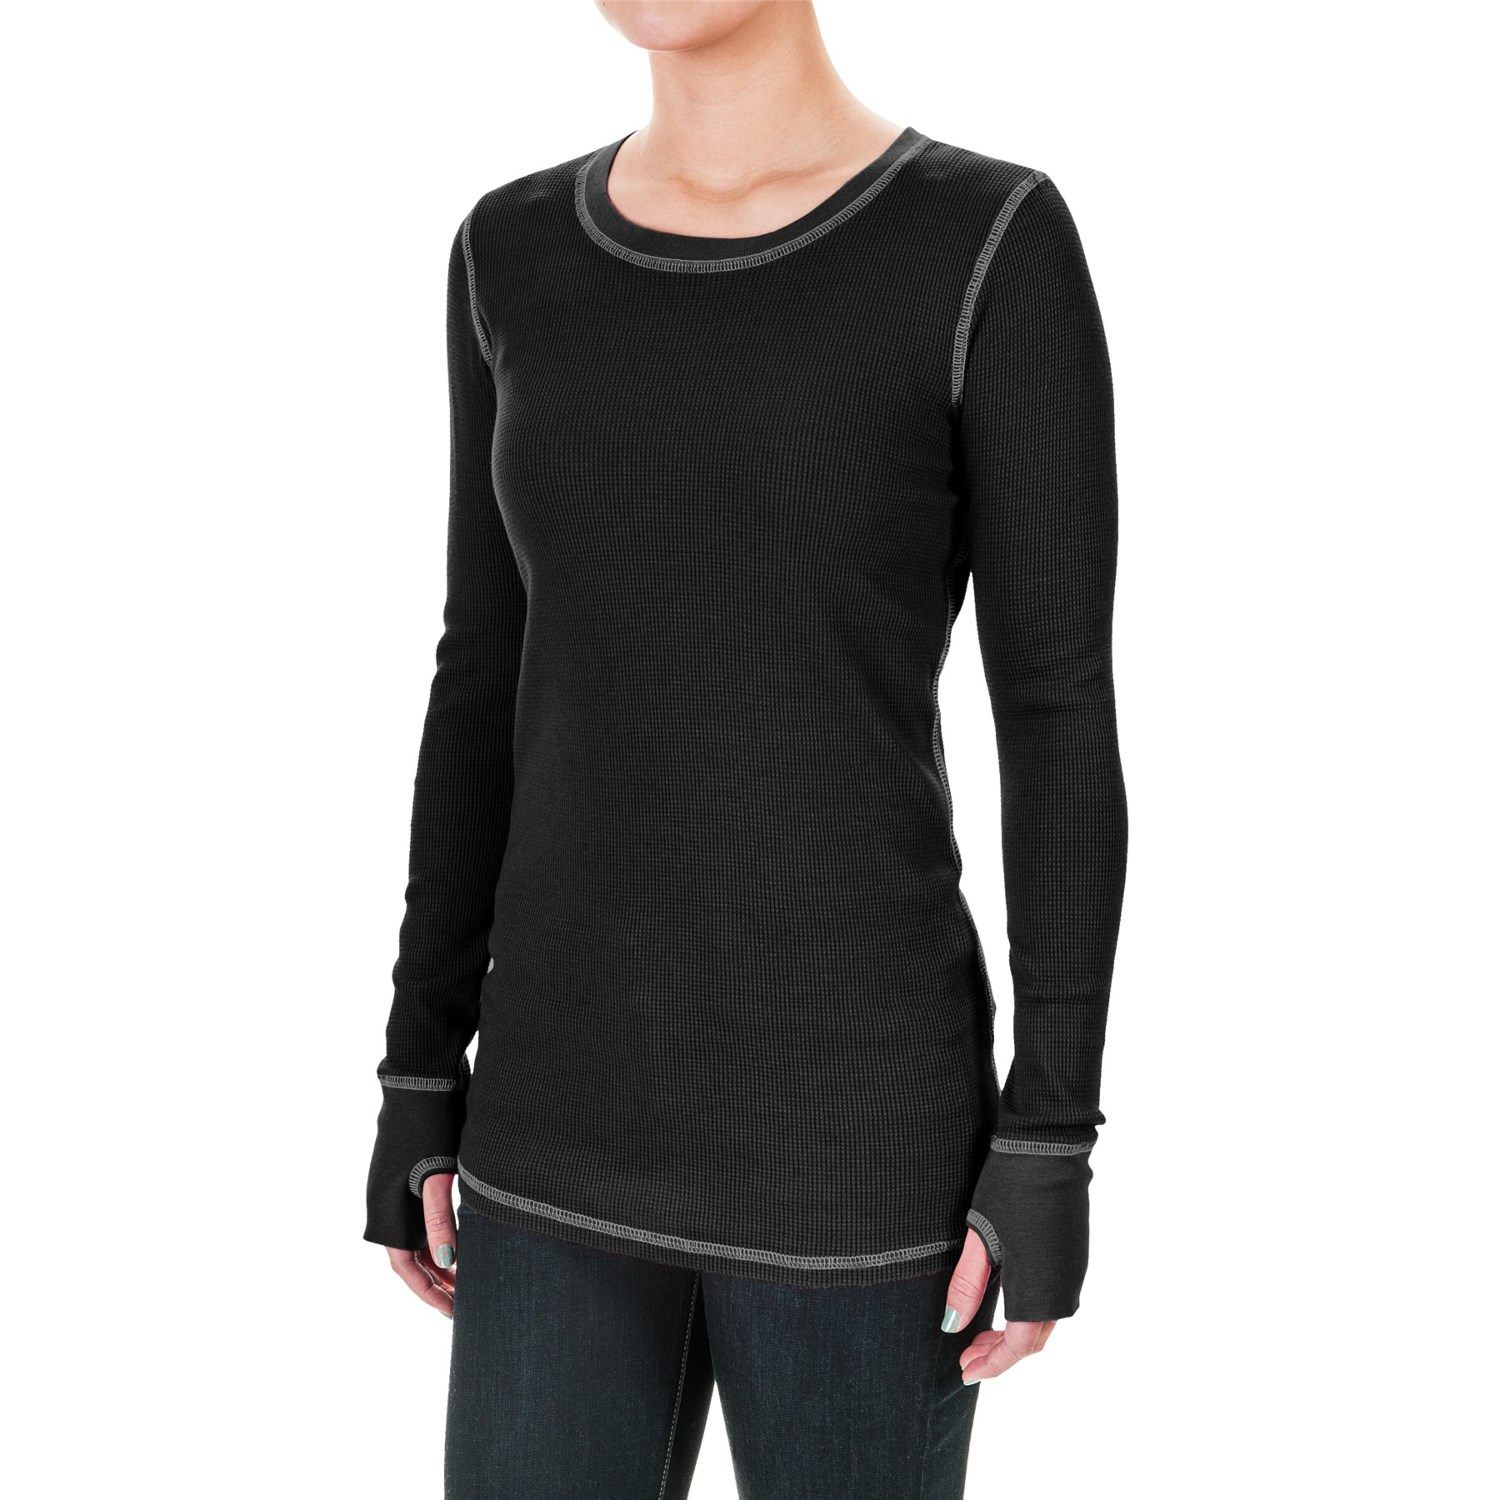 Compare womens thumbhole shirts products in Clothes at learn-islam.gq, including Crown Crewneck Thumbhole Pullover Sweatshirt, Nike Womens Purdue Boilermakers College Platinum Element Half Zip Shirt Black, Nike Womens Tamp Bay Buccaneers Element Half Zip Shirt Heather Red.